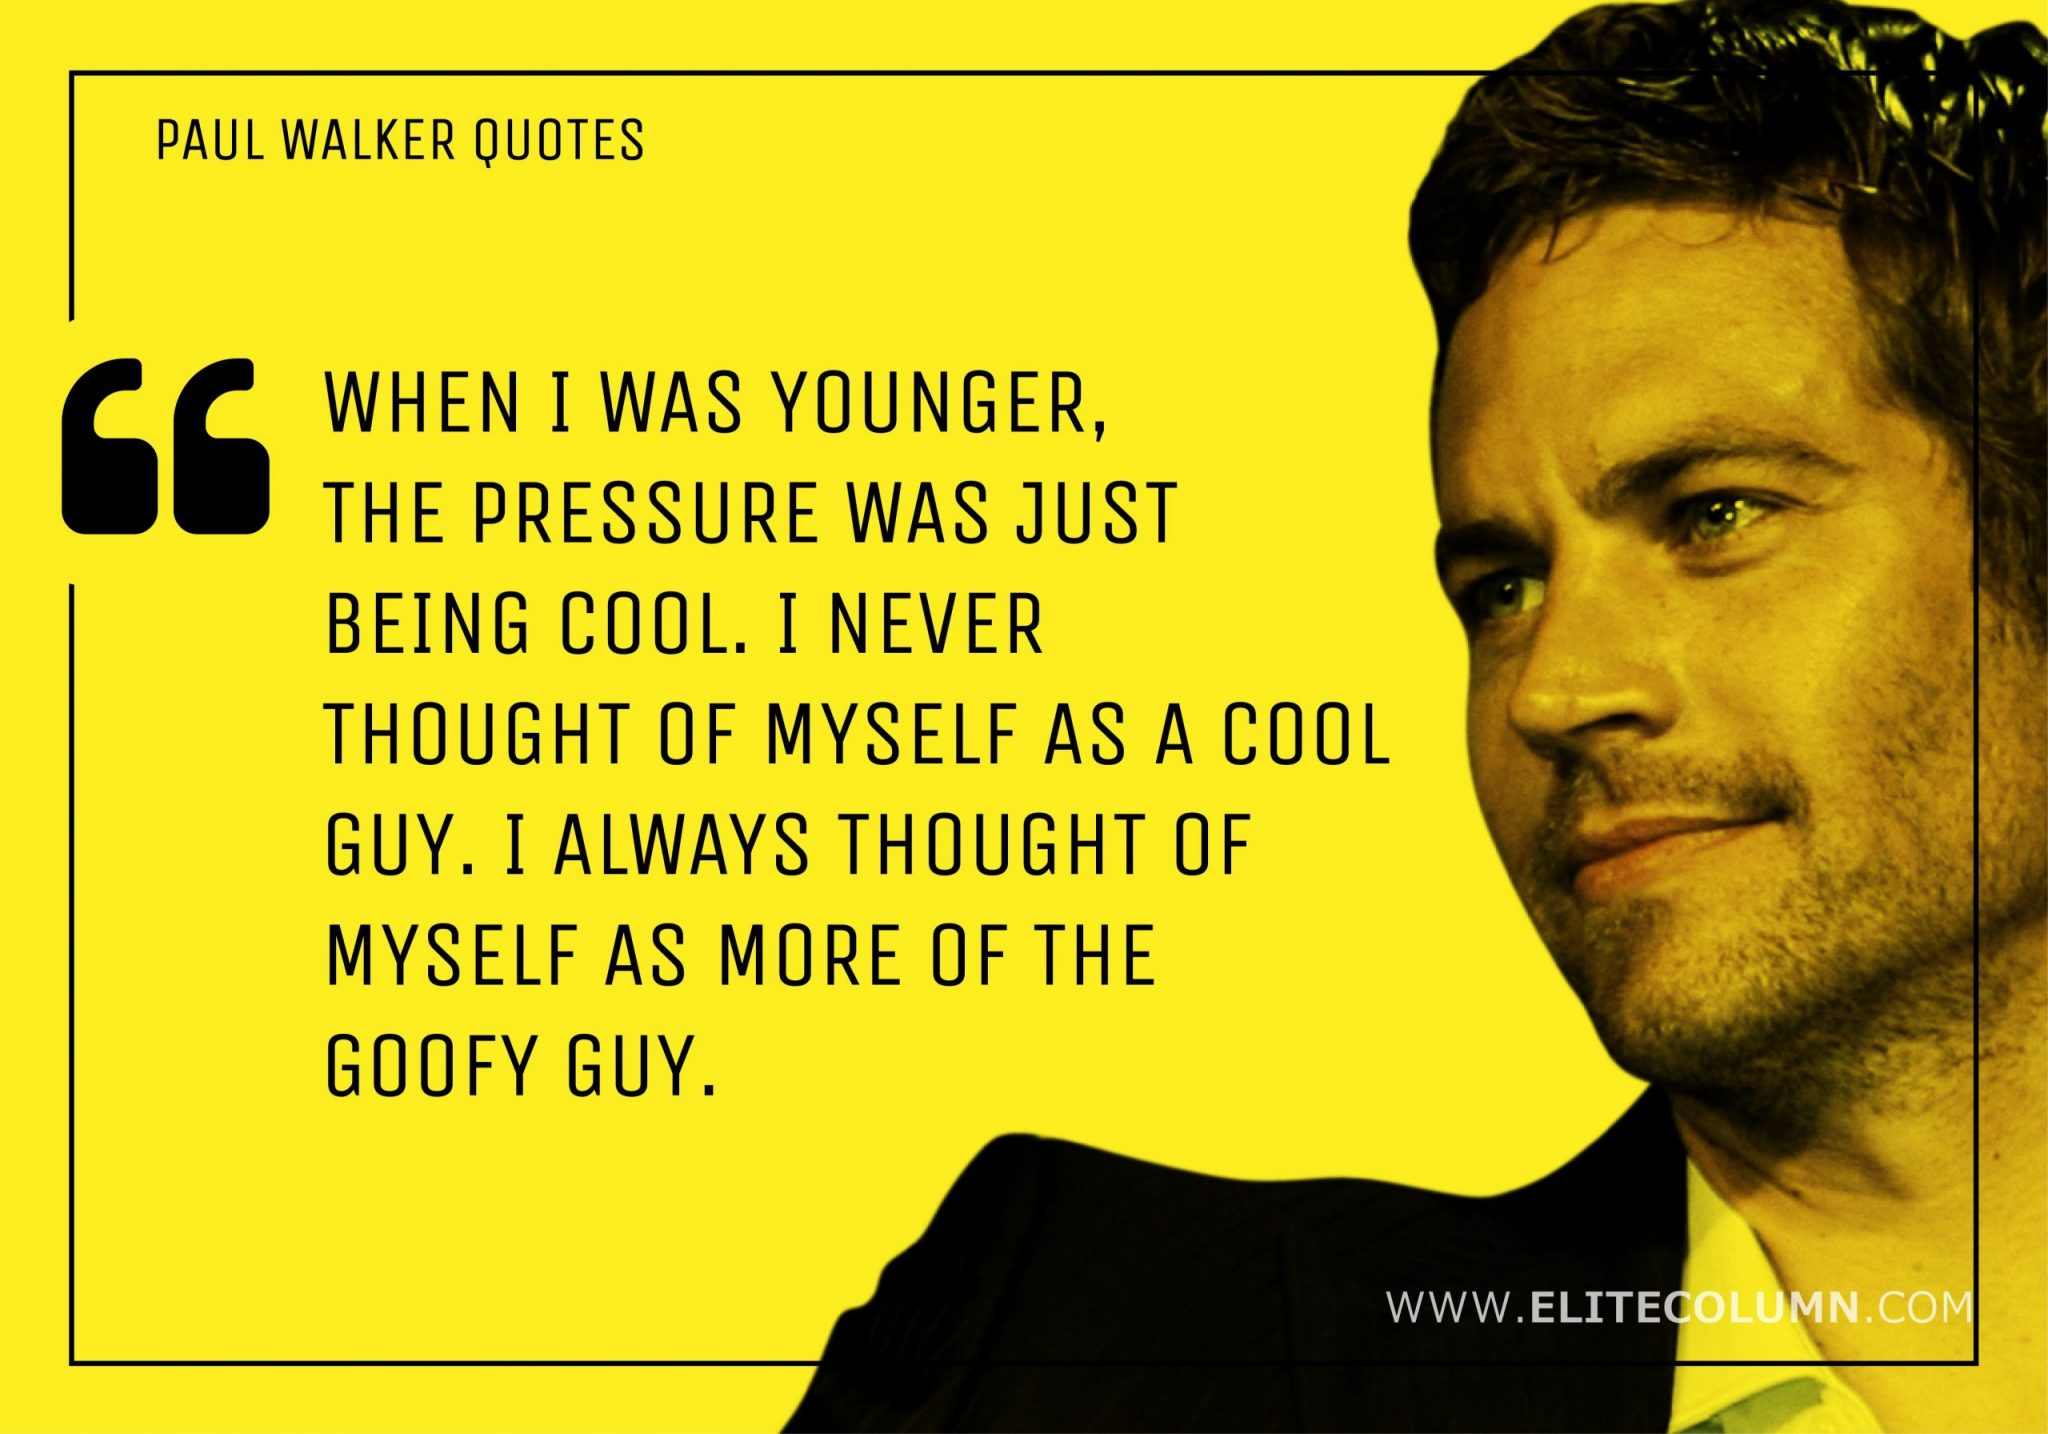 Paul Walker Quotes (3)